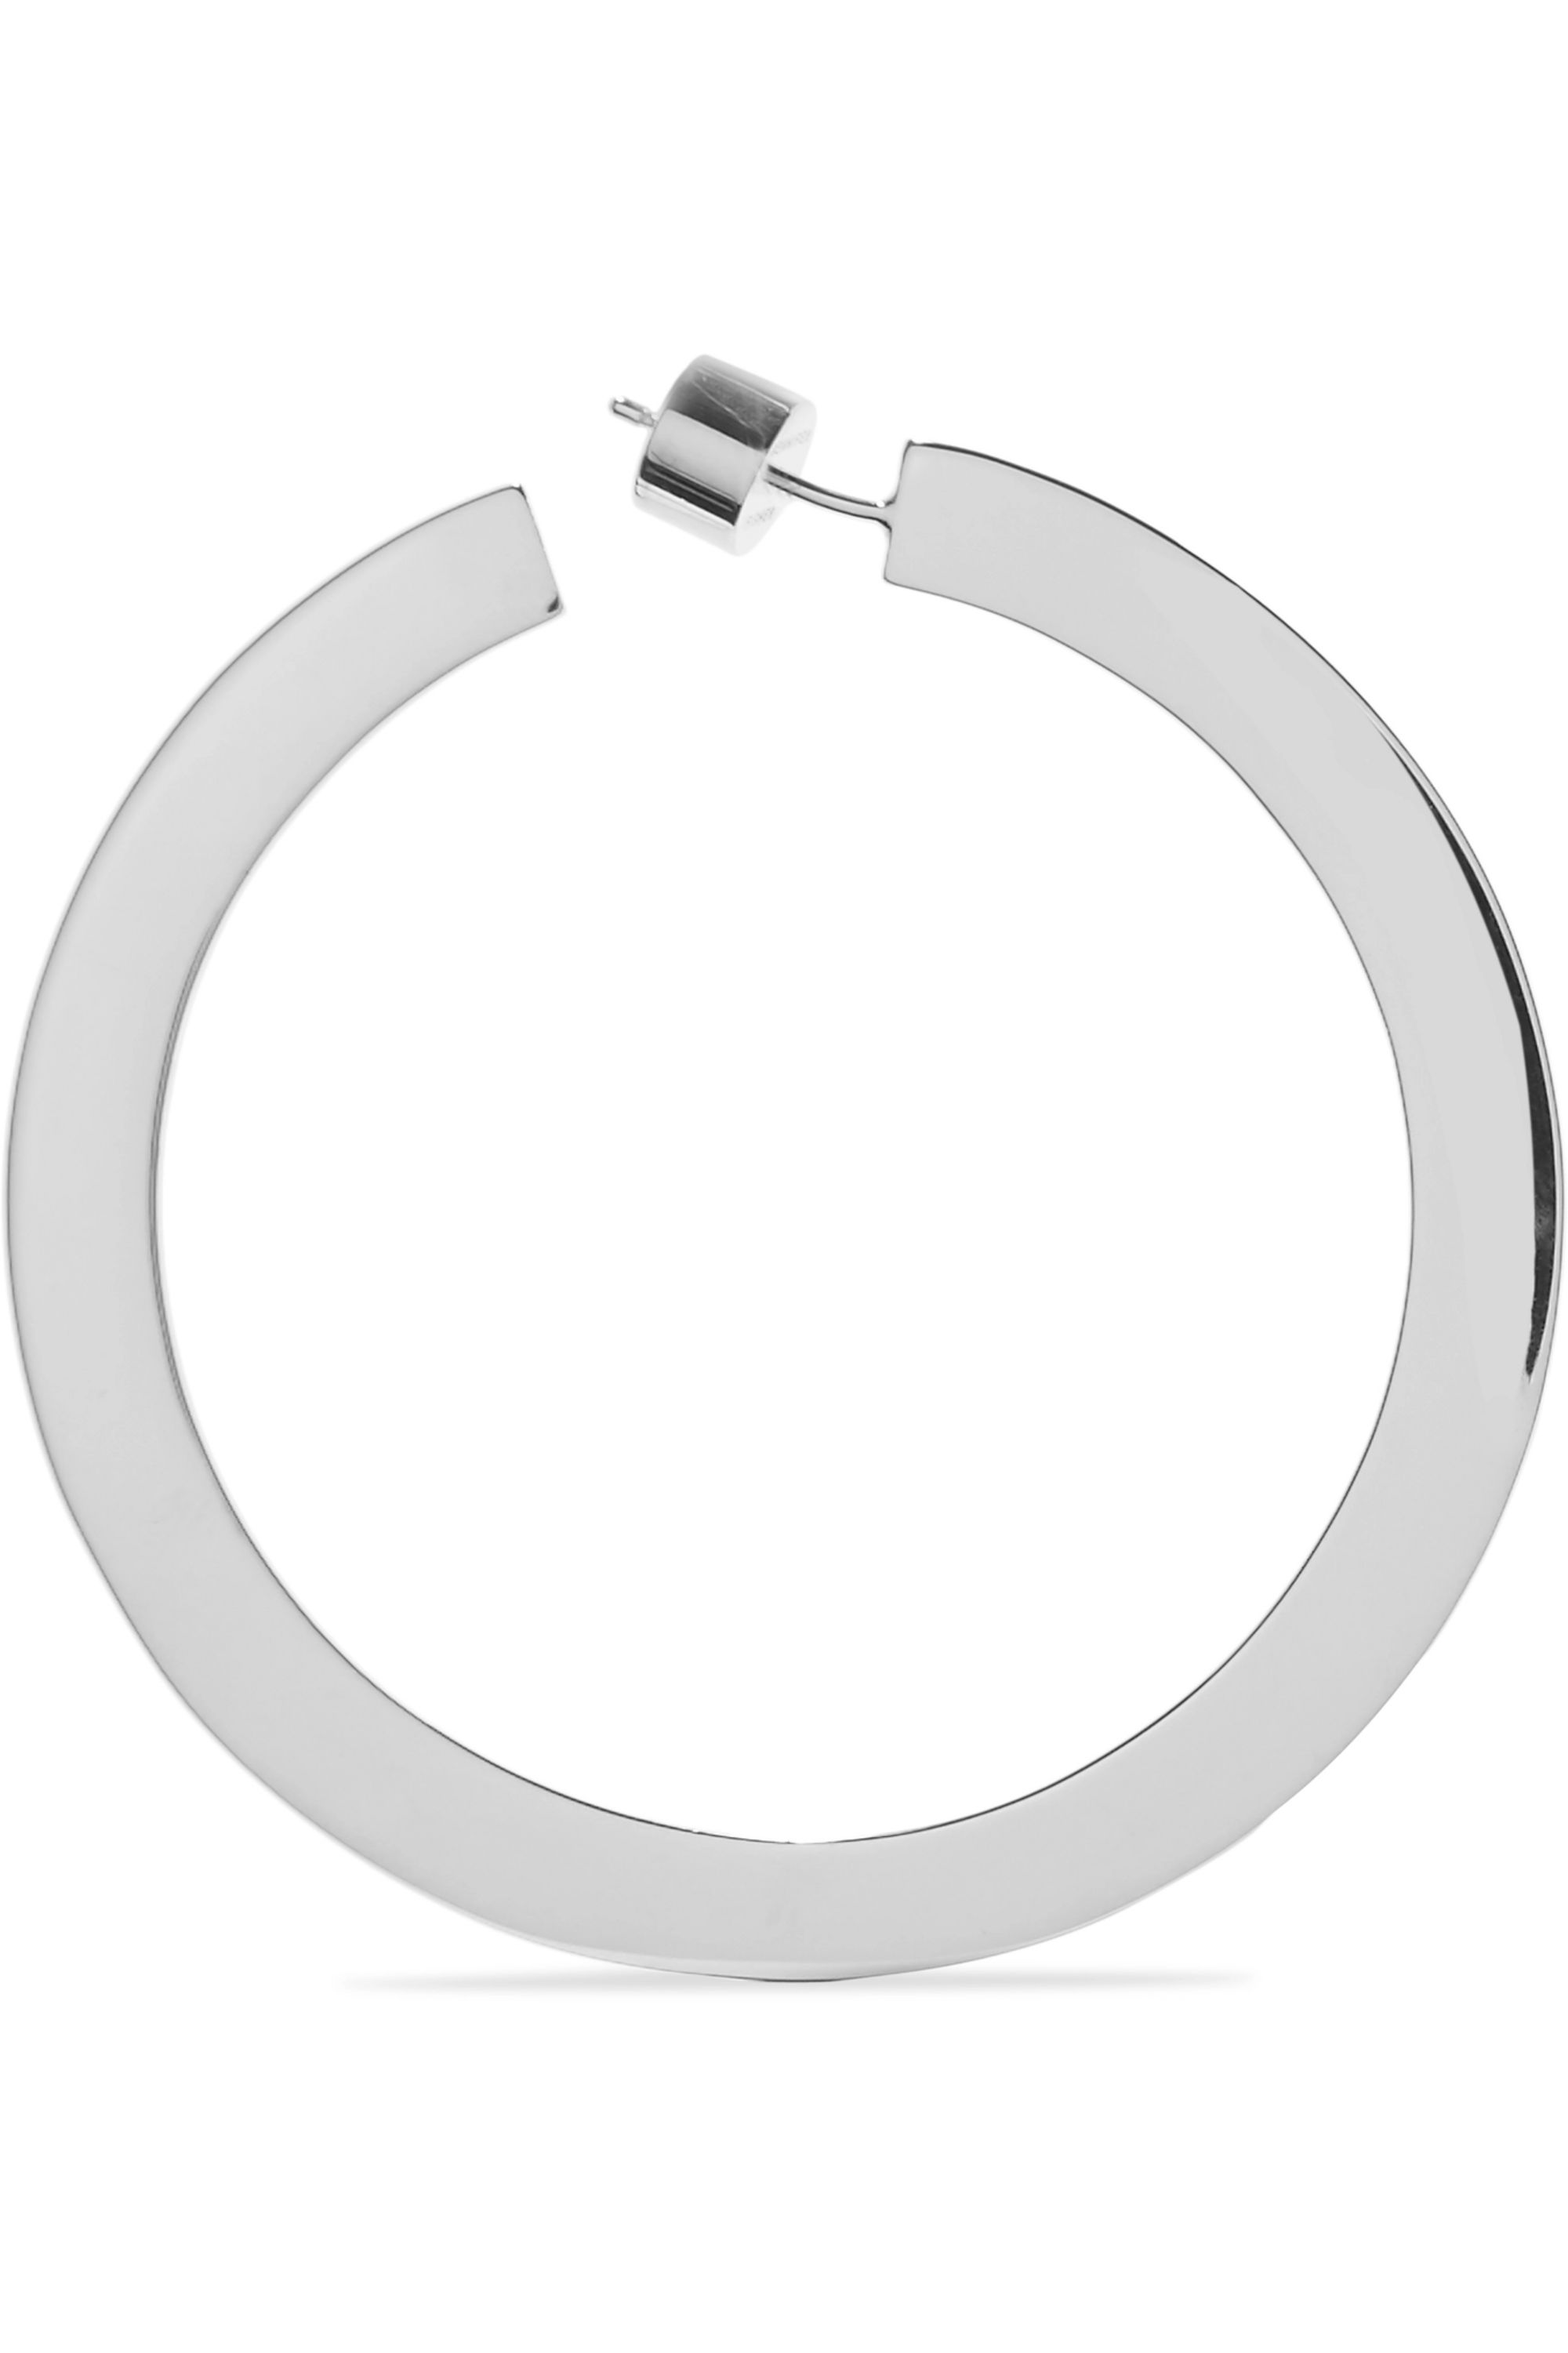 Jennifer Fisher Drew silver-plated hoop earrings